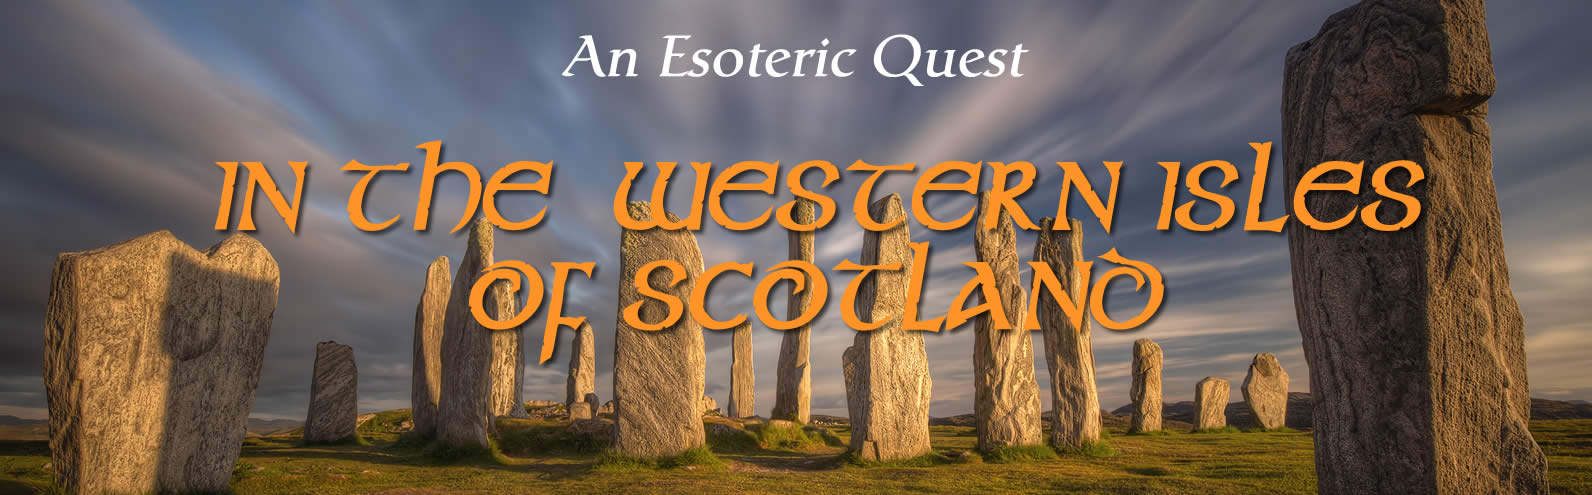 esoteric-quest-scotland-slider1-final